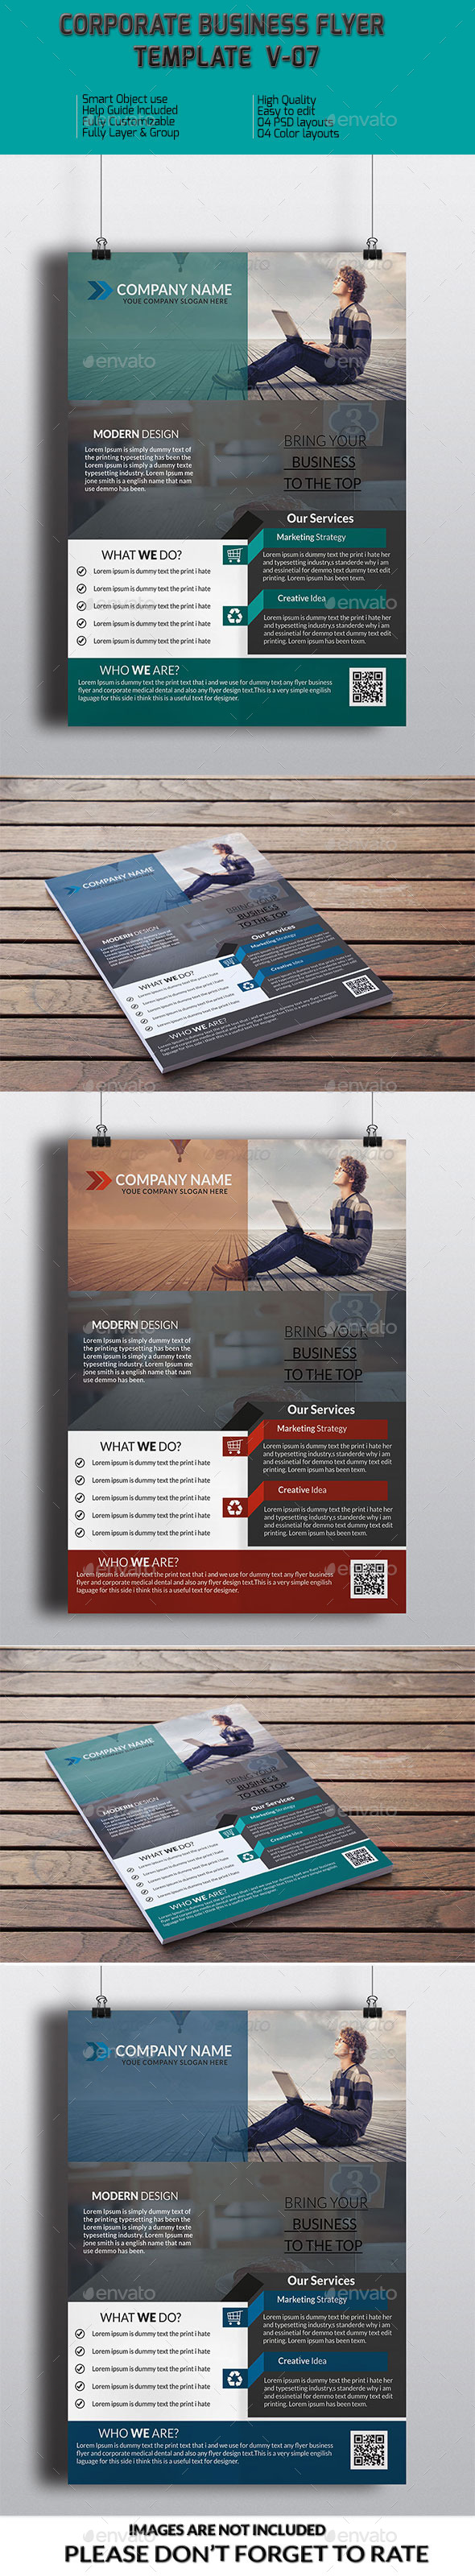 Corporate Business Flyer Template V-07 - Corporate Flyers